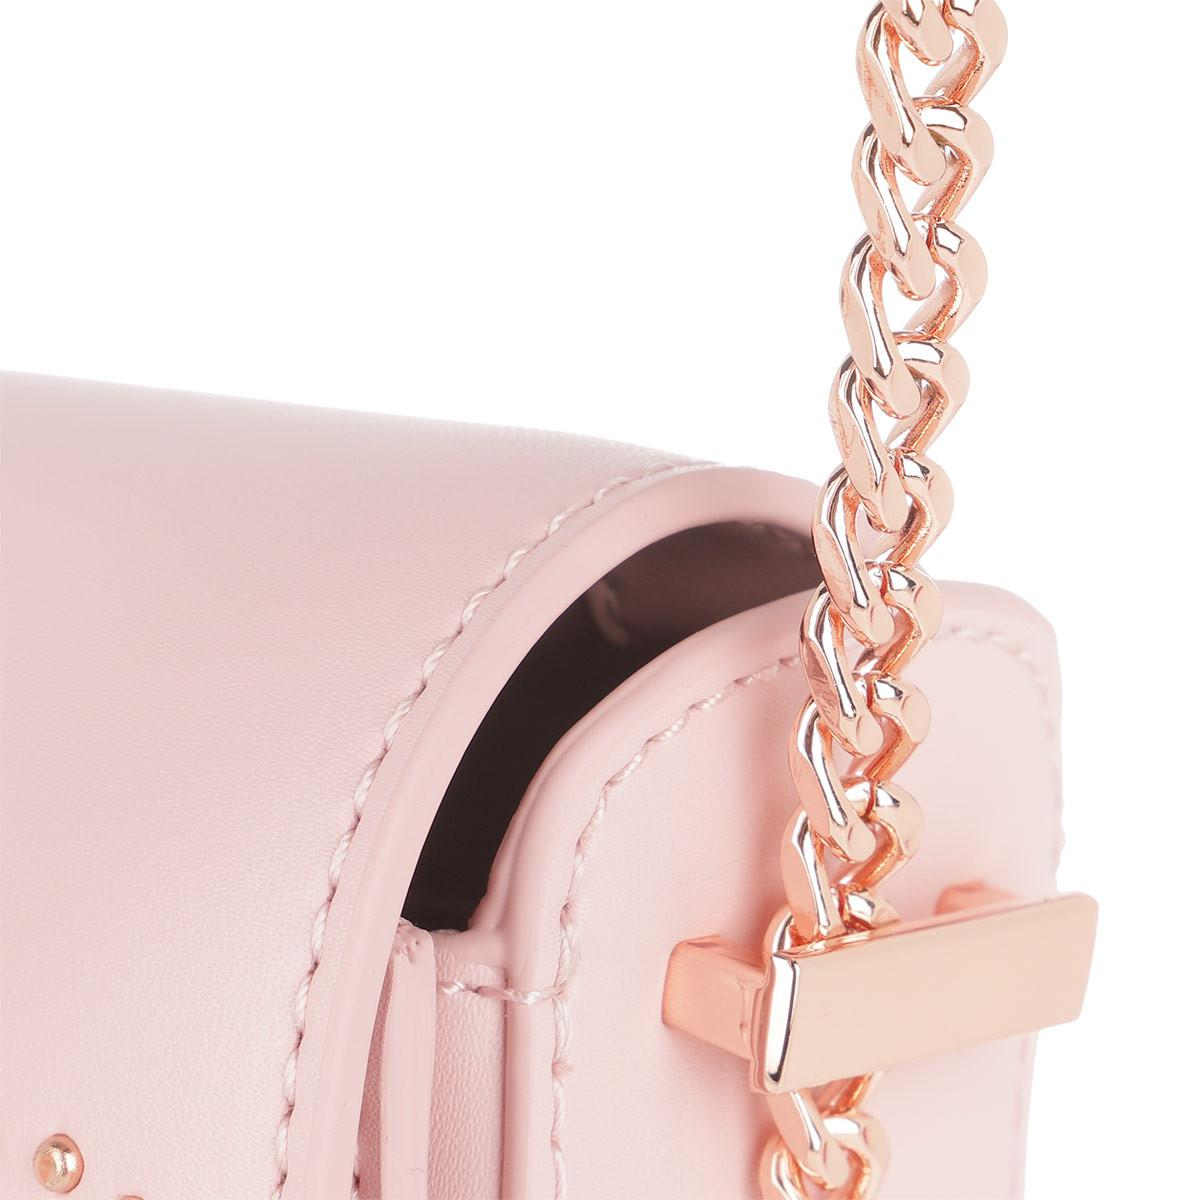 aa831a9b7f Ted Baker Susy Soft Blossom Moon Bag Light Pink in Pink - Lyst